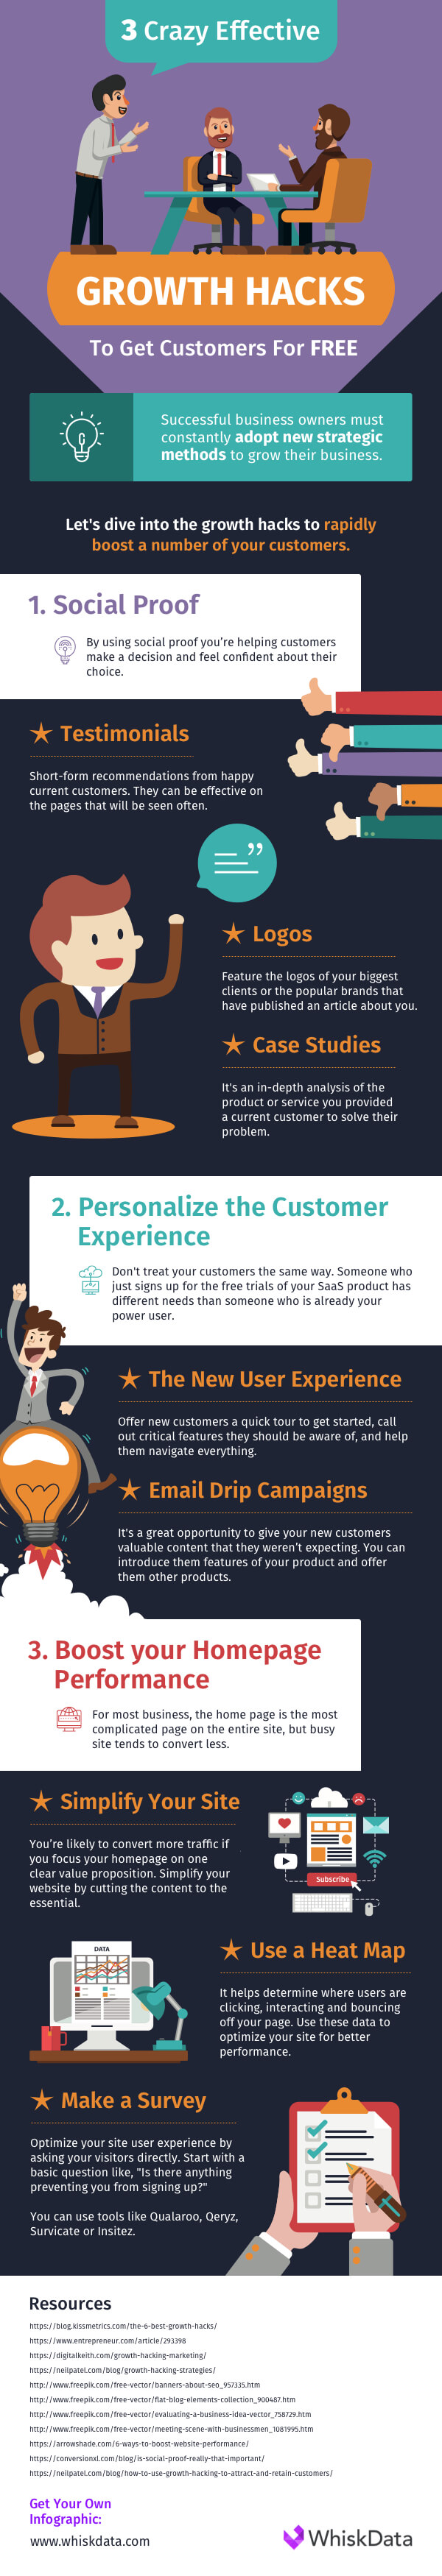 3-Crazy-Effective-Growth-Hacks-to-get-Customers-for-FREE